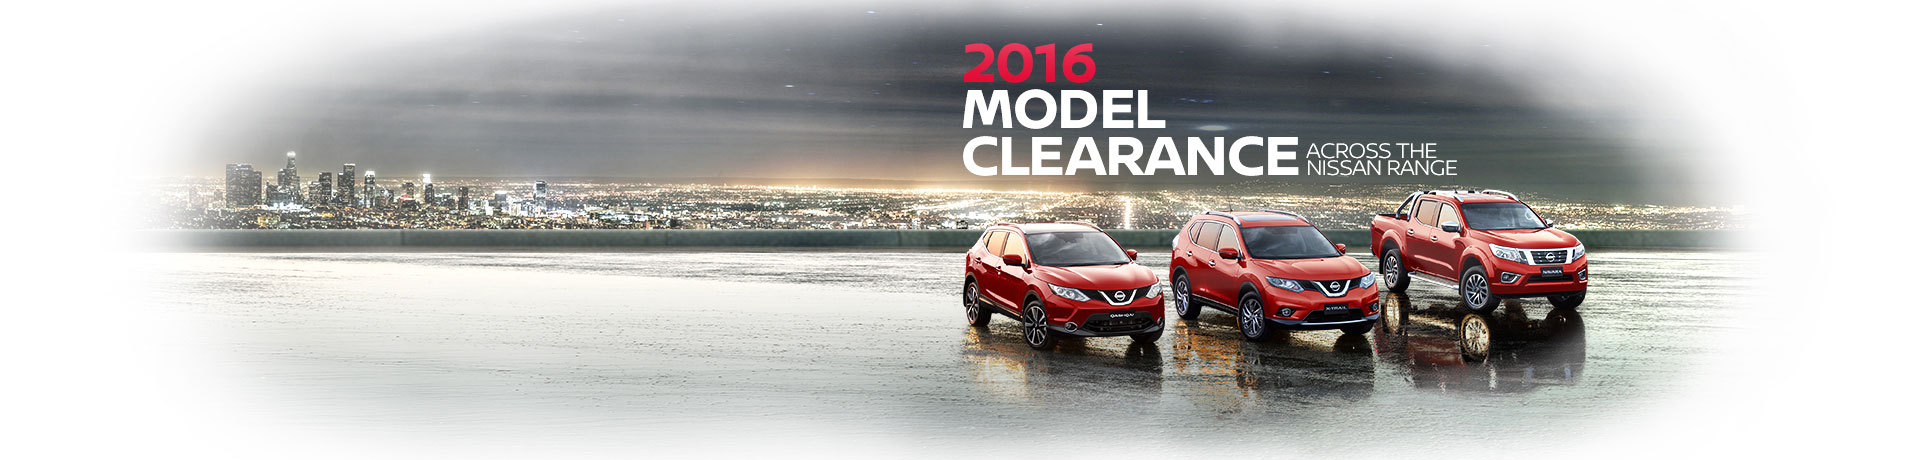 Nissan National Offer - 2016 Model Clearance